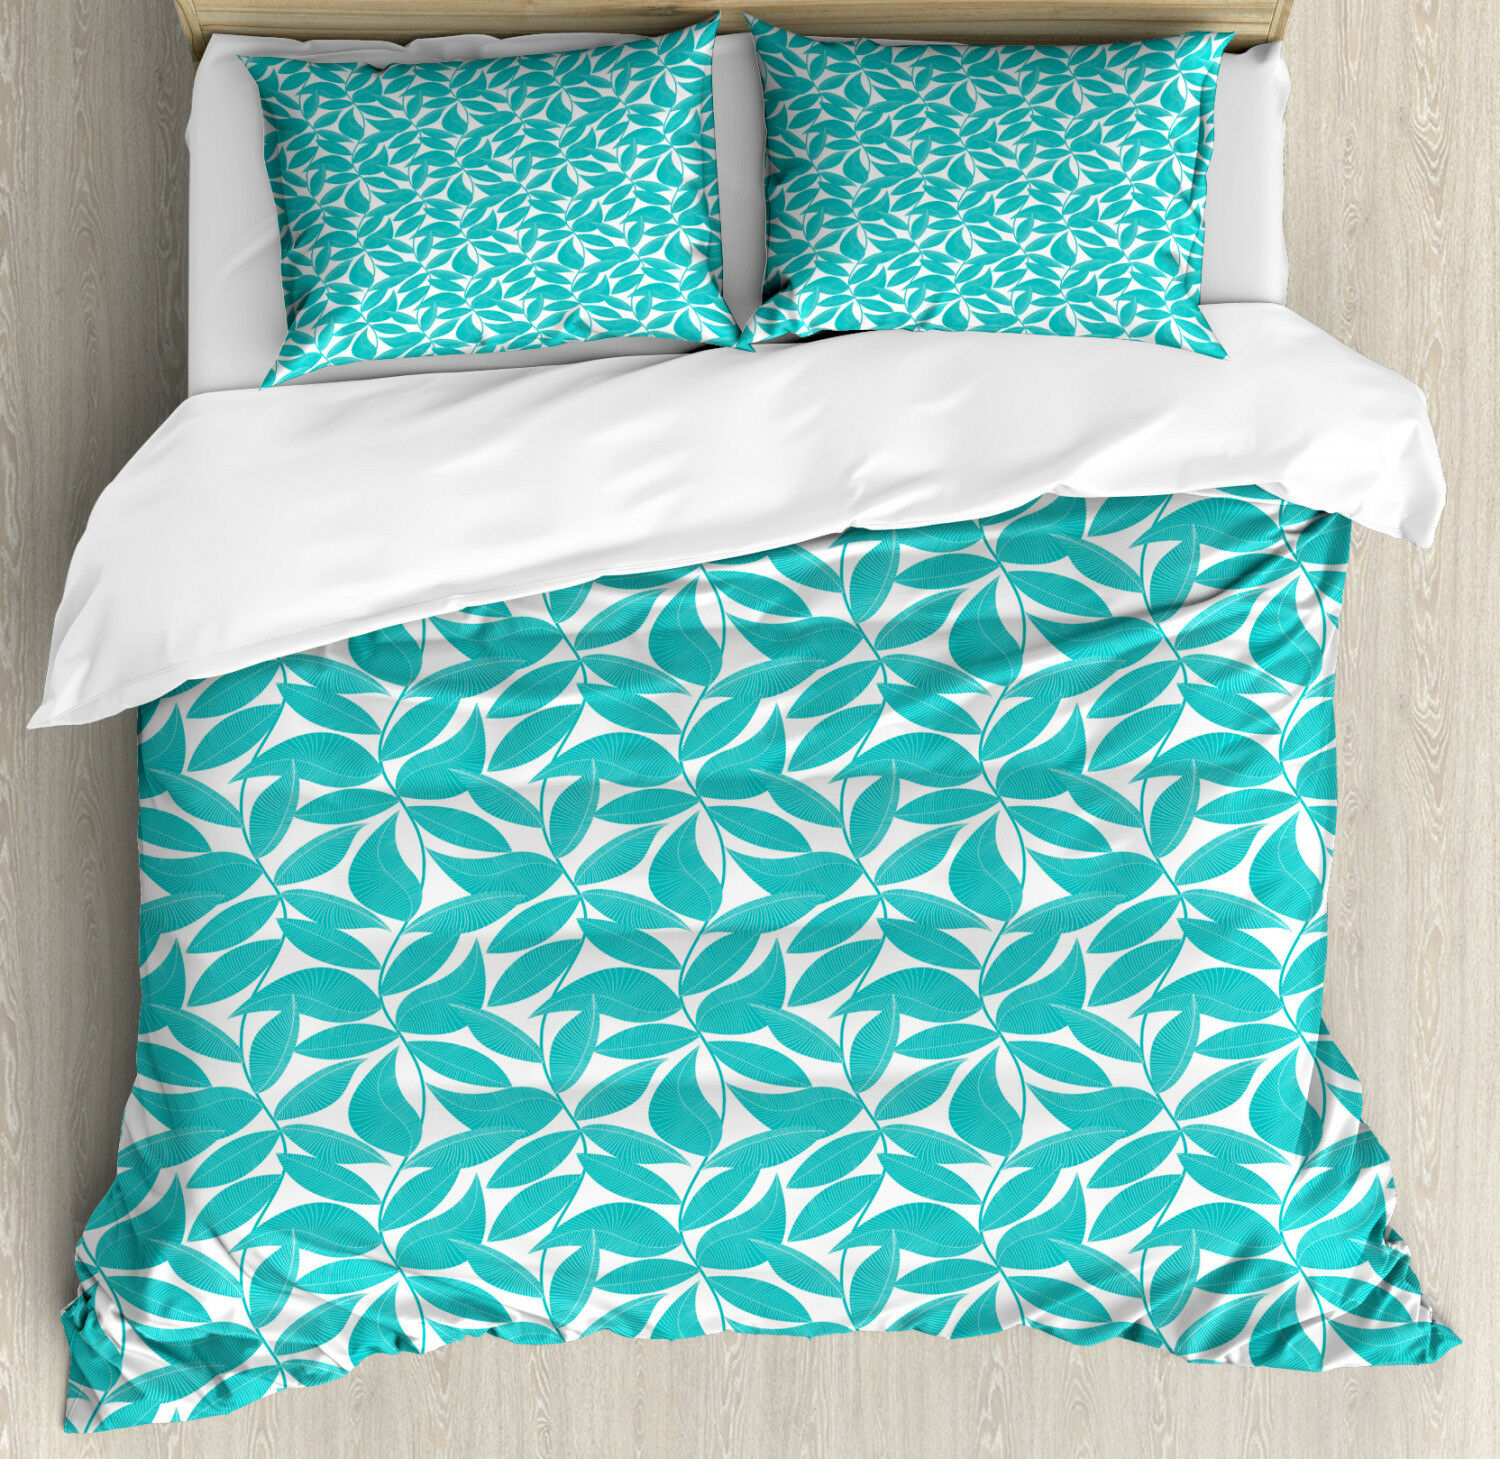 Turquoise Duvet Cover Set with Pillow Shams Foliage Leaves Lines Print